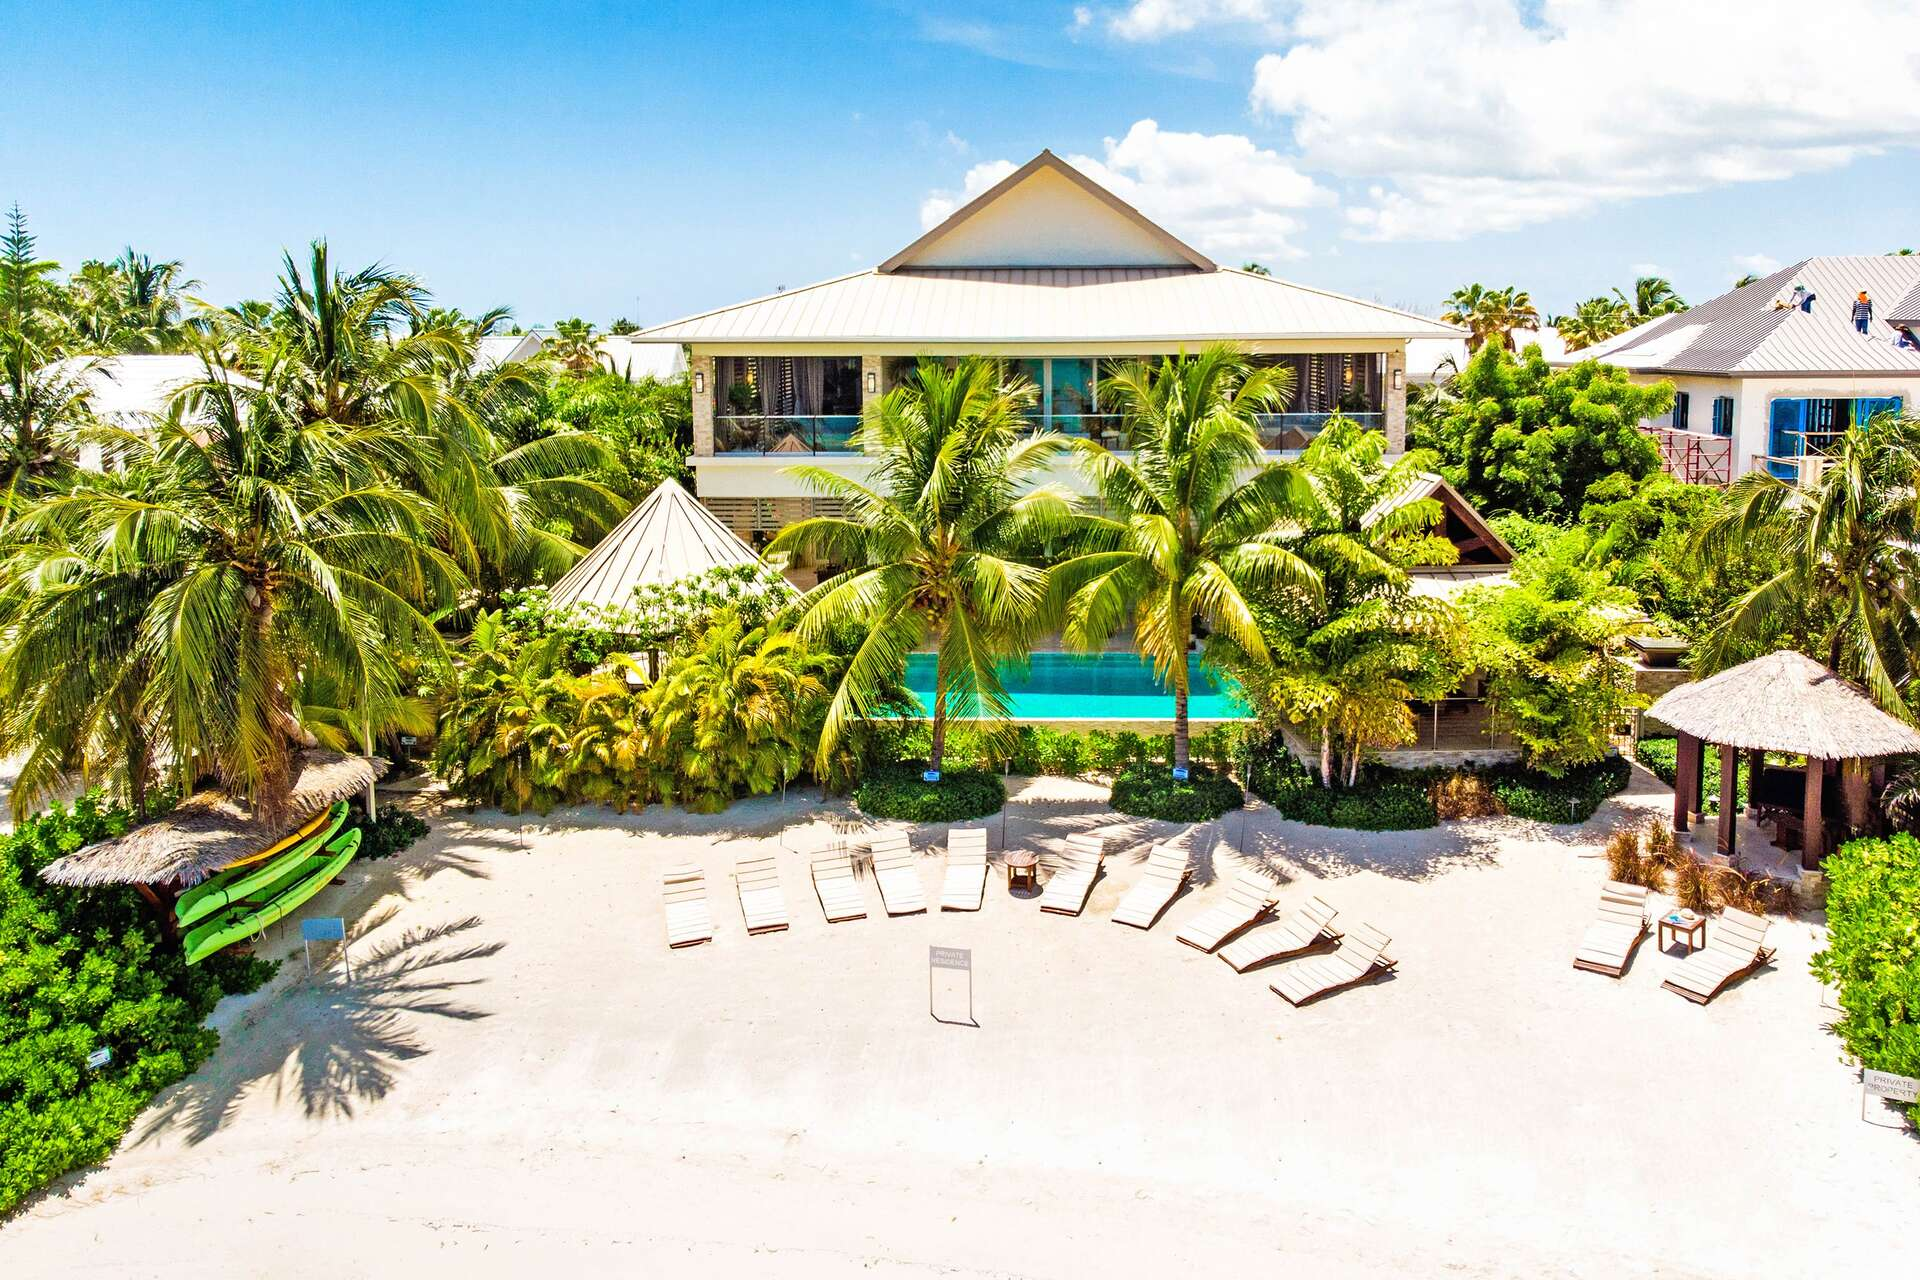 Luxury villa rentals caribbean - Cayman islands - Grand cayman - Rum point - Paradis Sur Mer - Image 1/51